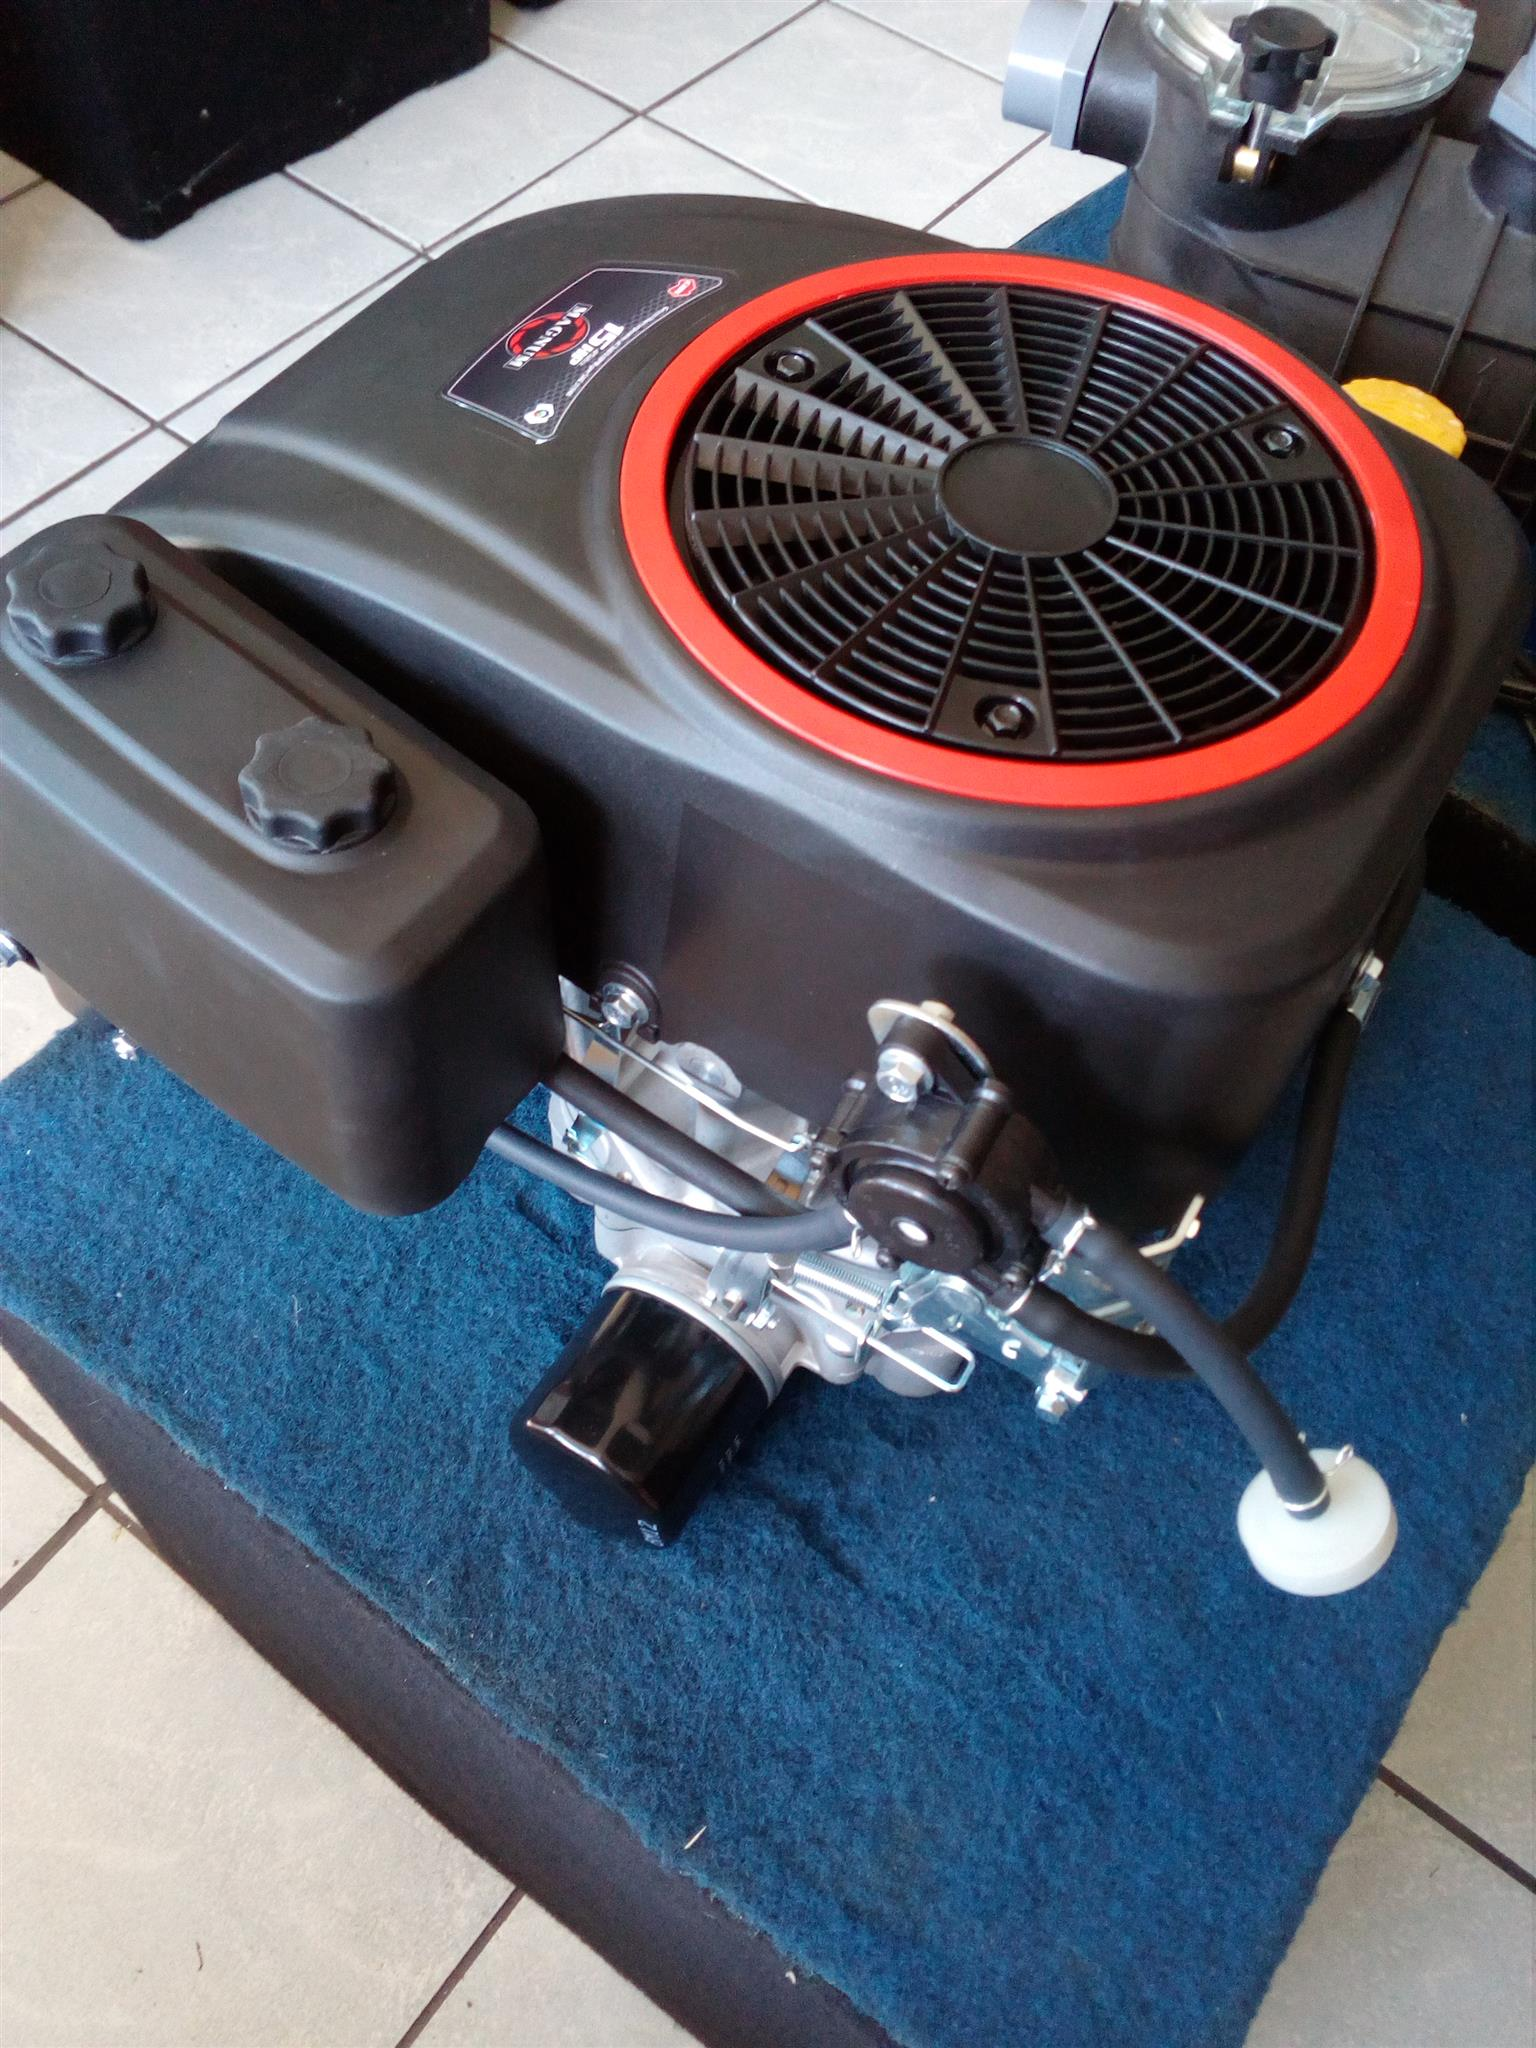 Magnum V85 Lawnmower replacement engine price incl vat